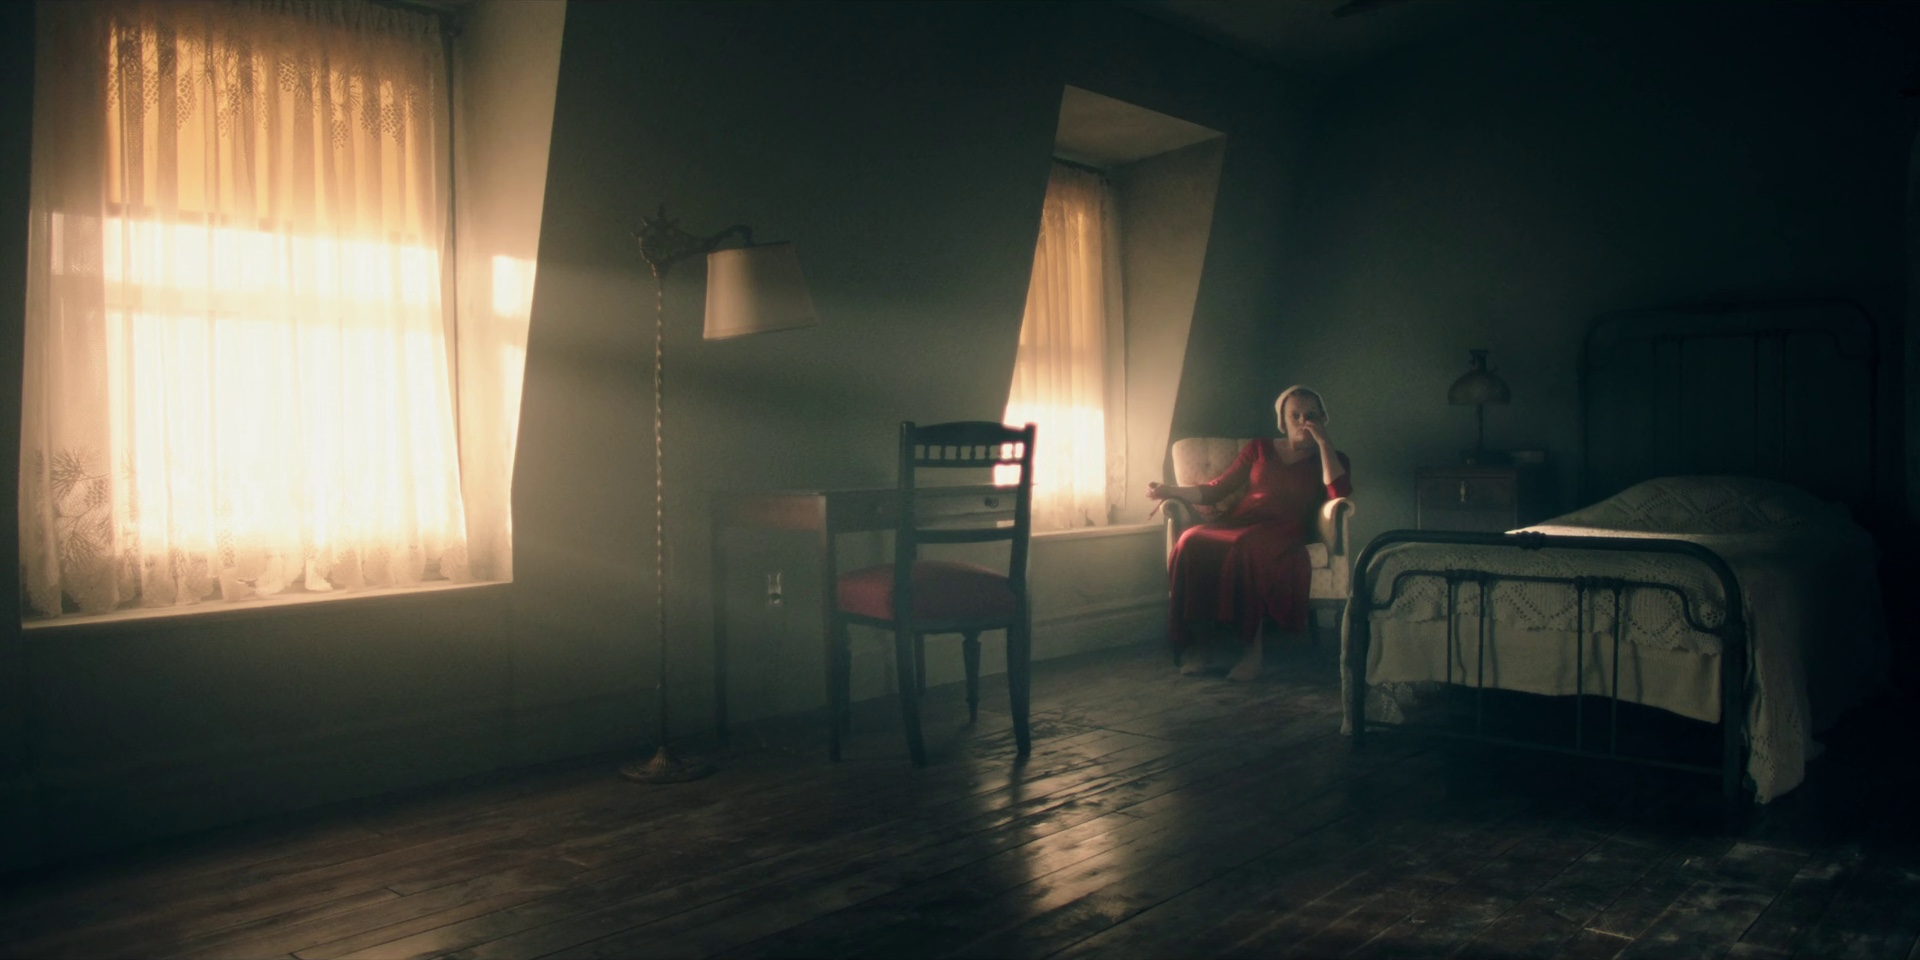 Resultado de imagen para lighting through the window curtains cinematography